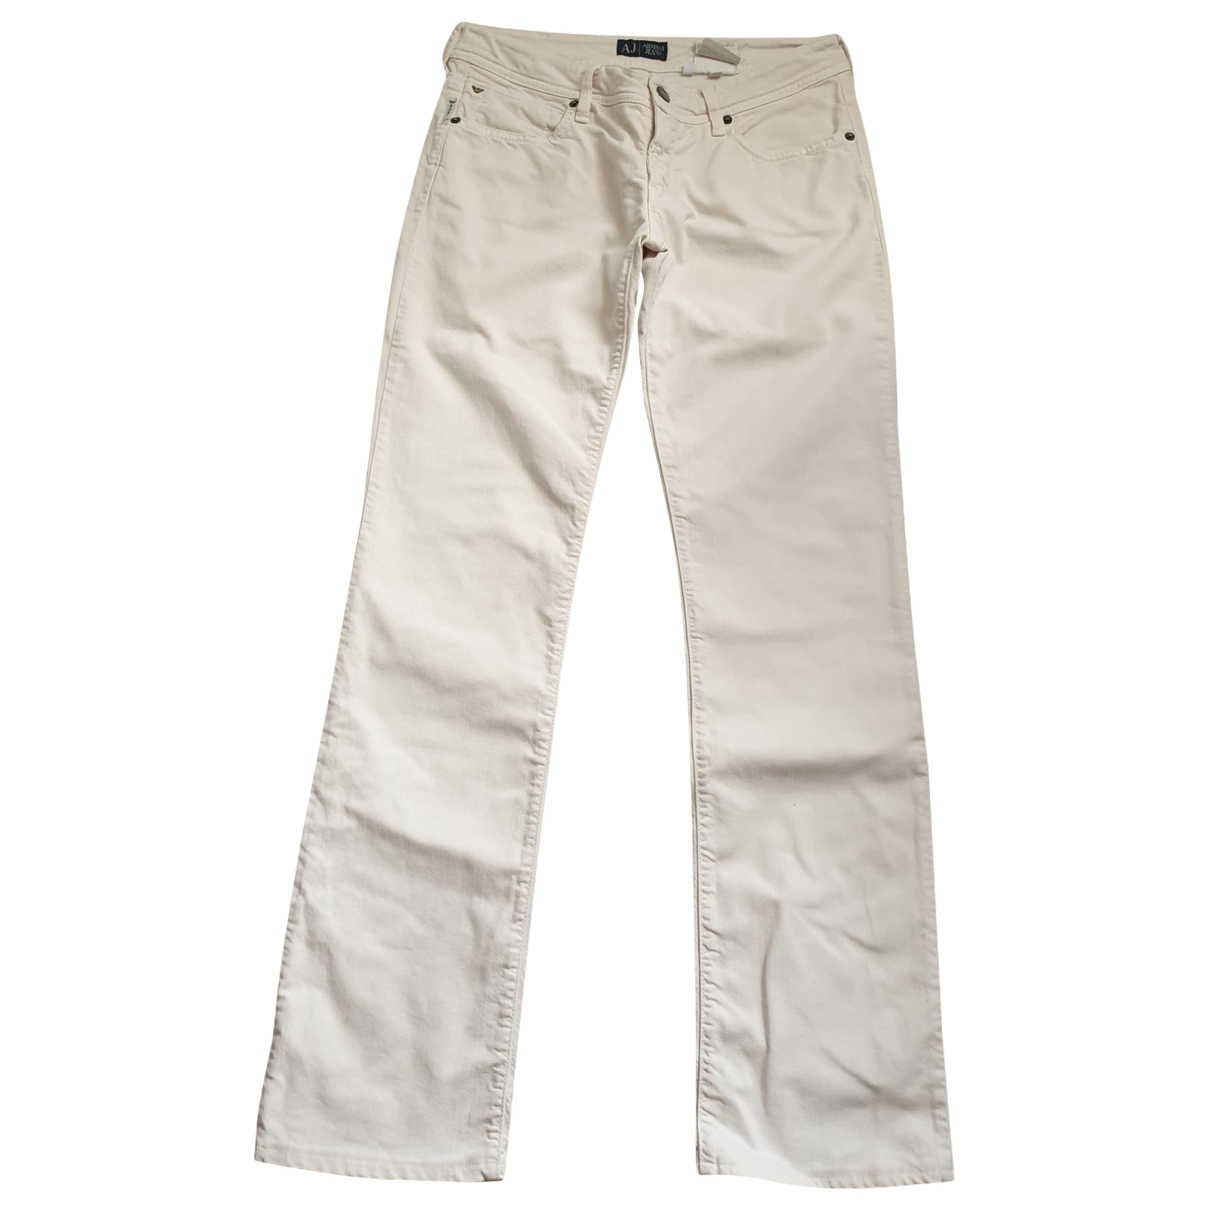 Armani Jeans \N Cotton - elasthane Jeans for Women 28 US